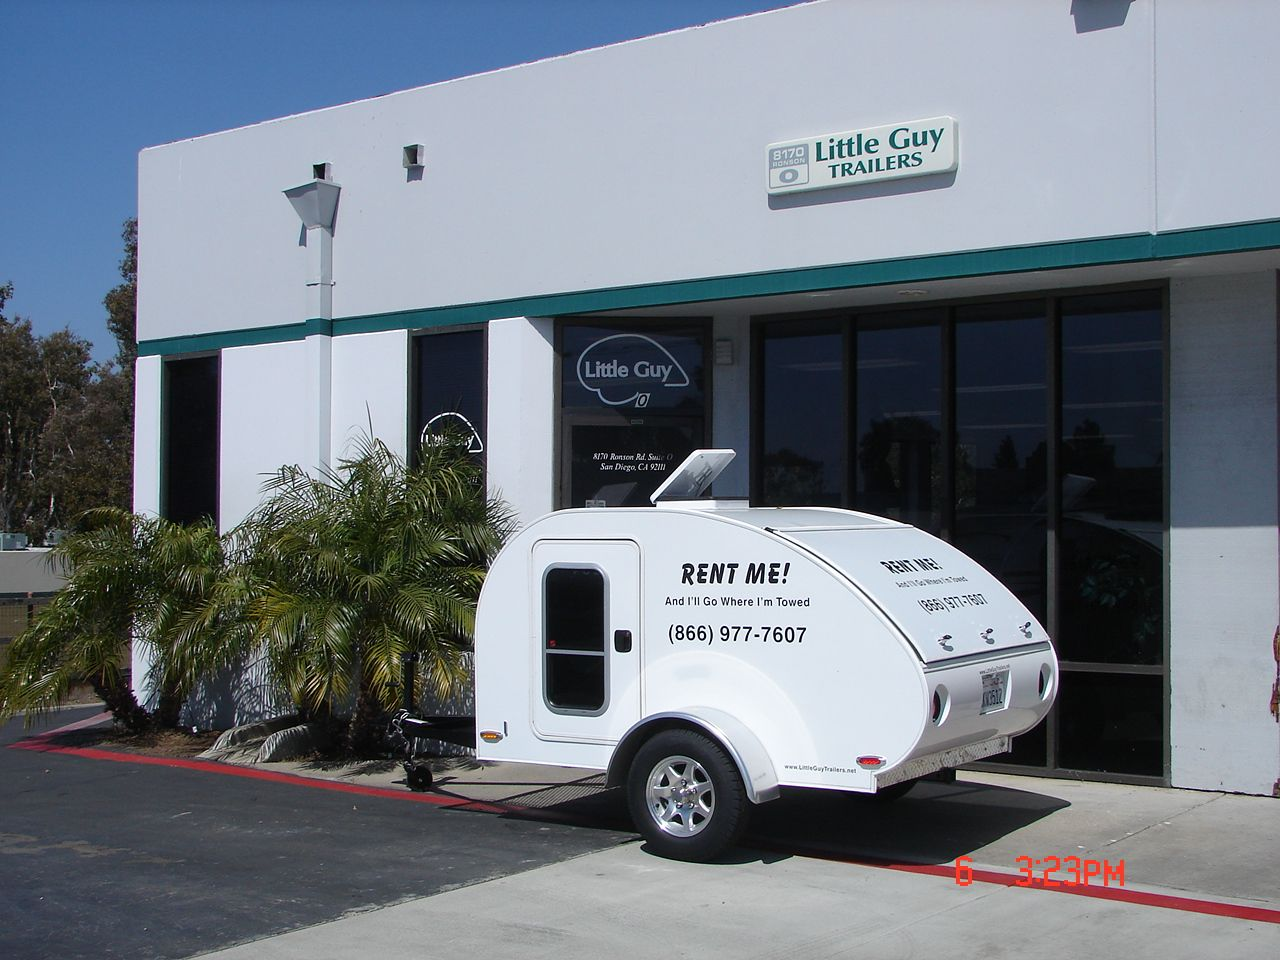 Teardrop Trailer Rental In San Diego Teardrop Trailer Rental Teardrop Trailer Trailer